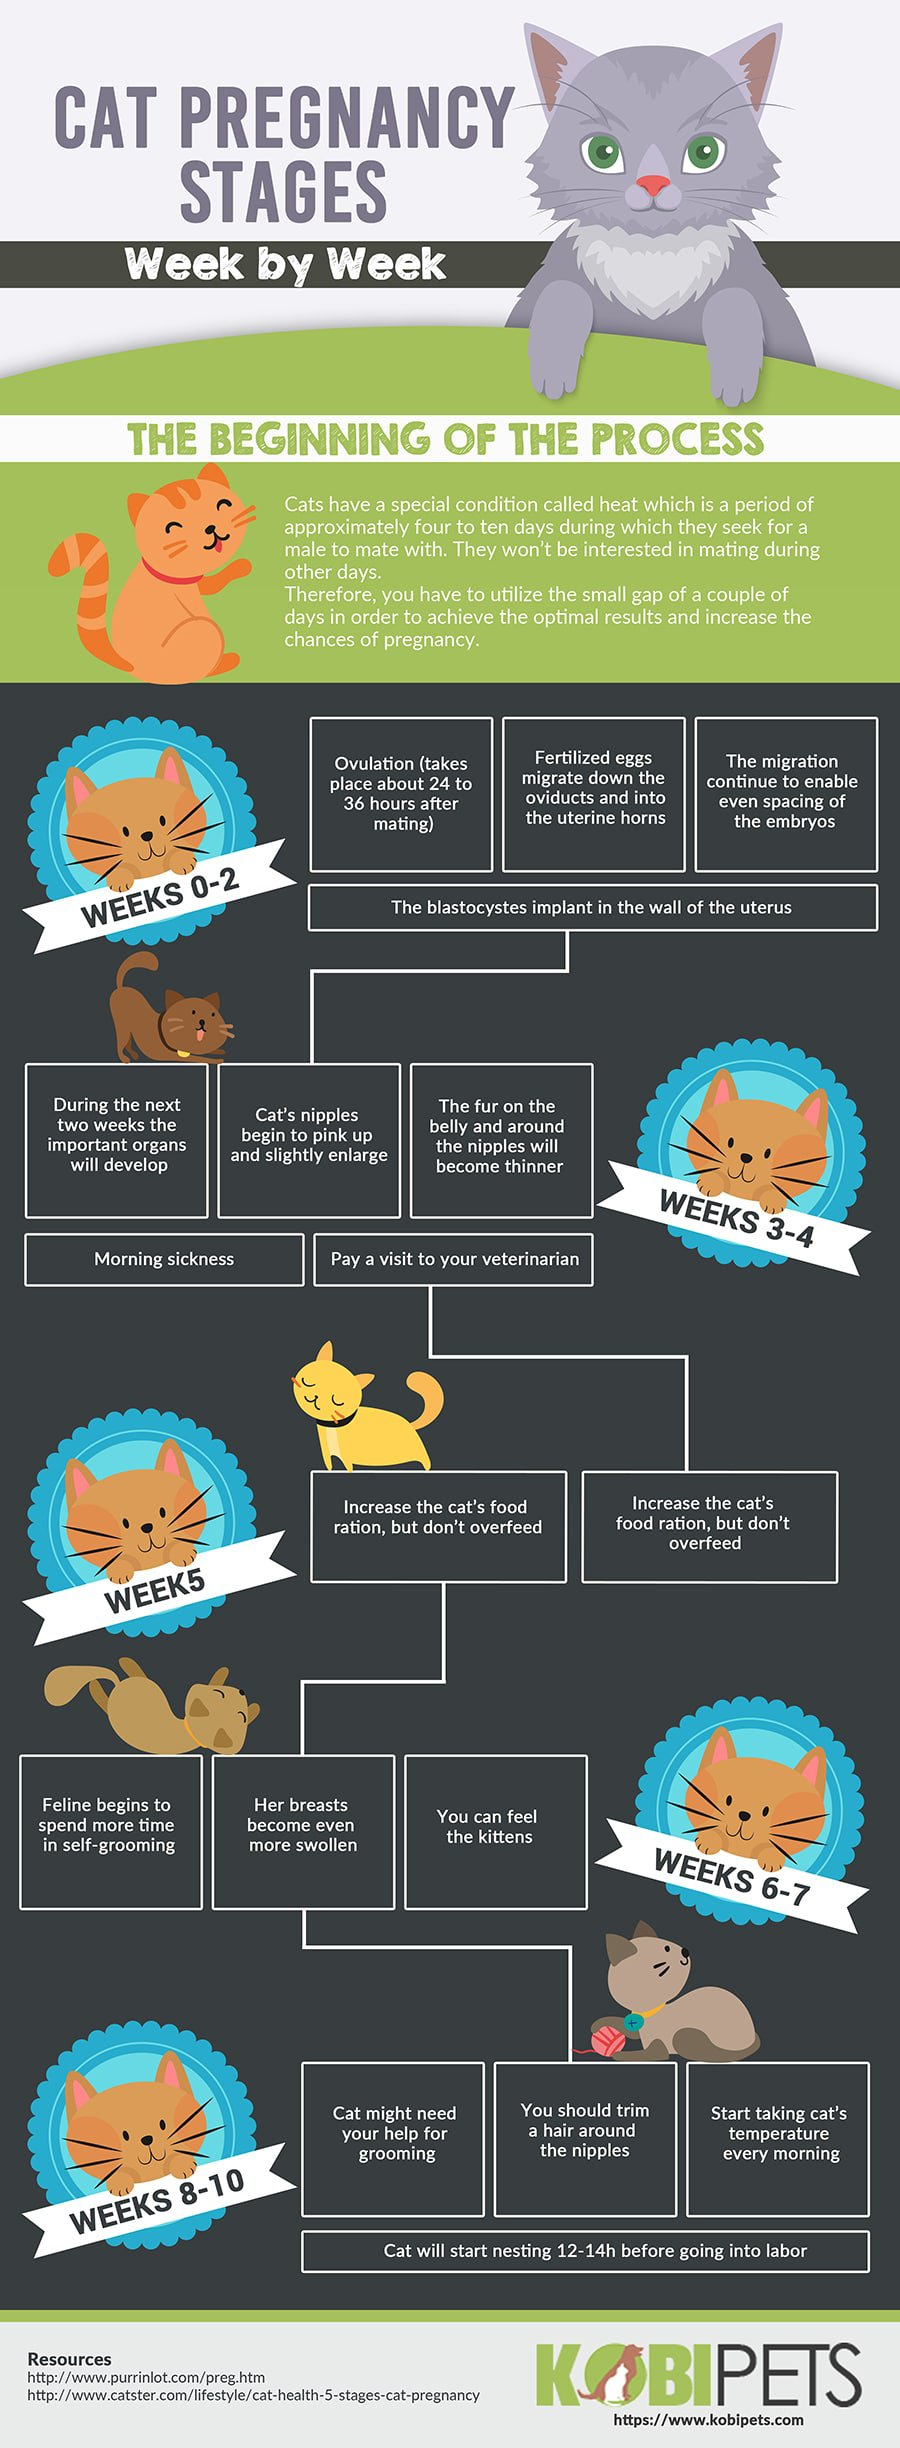 cat-pregnancy-timeline-infographic